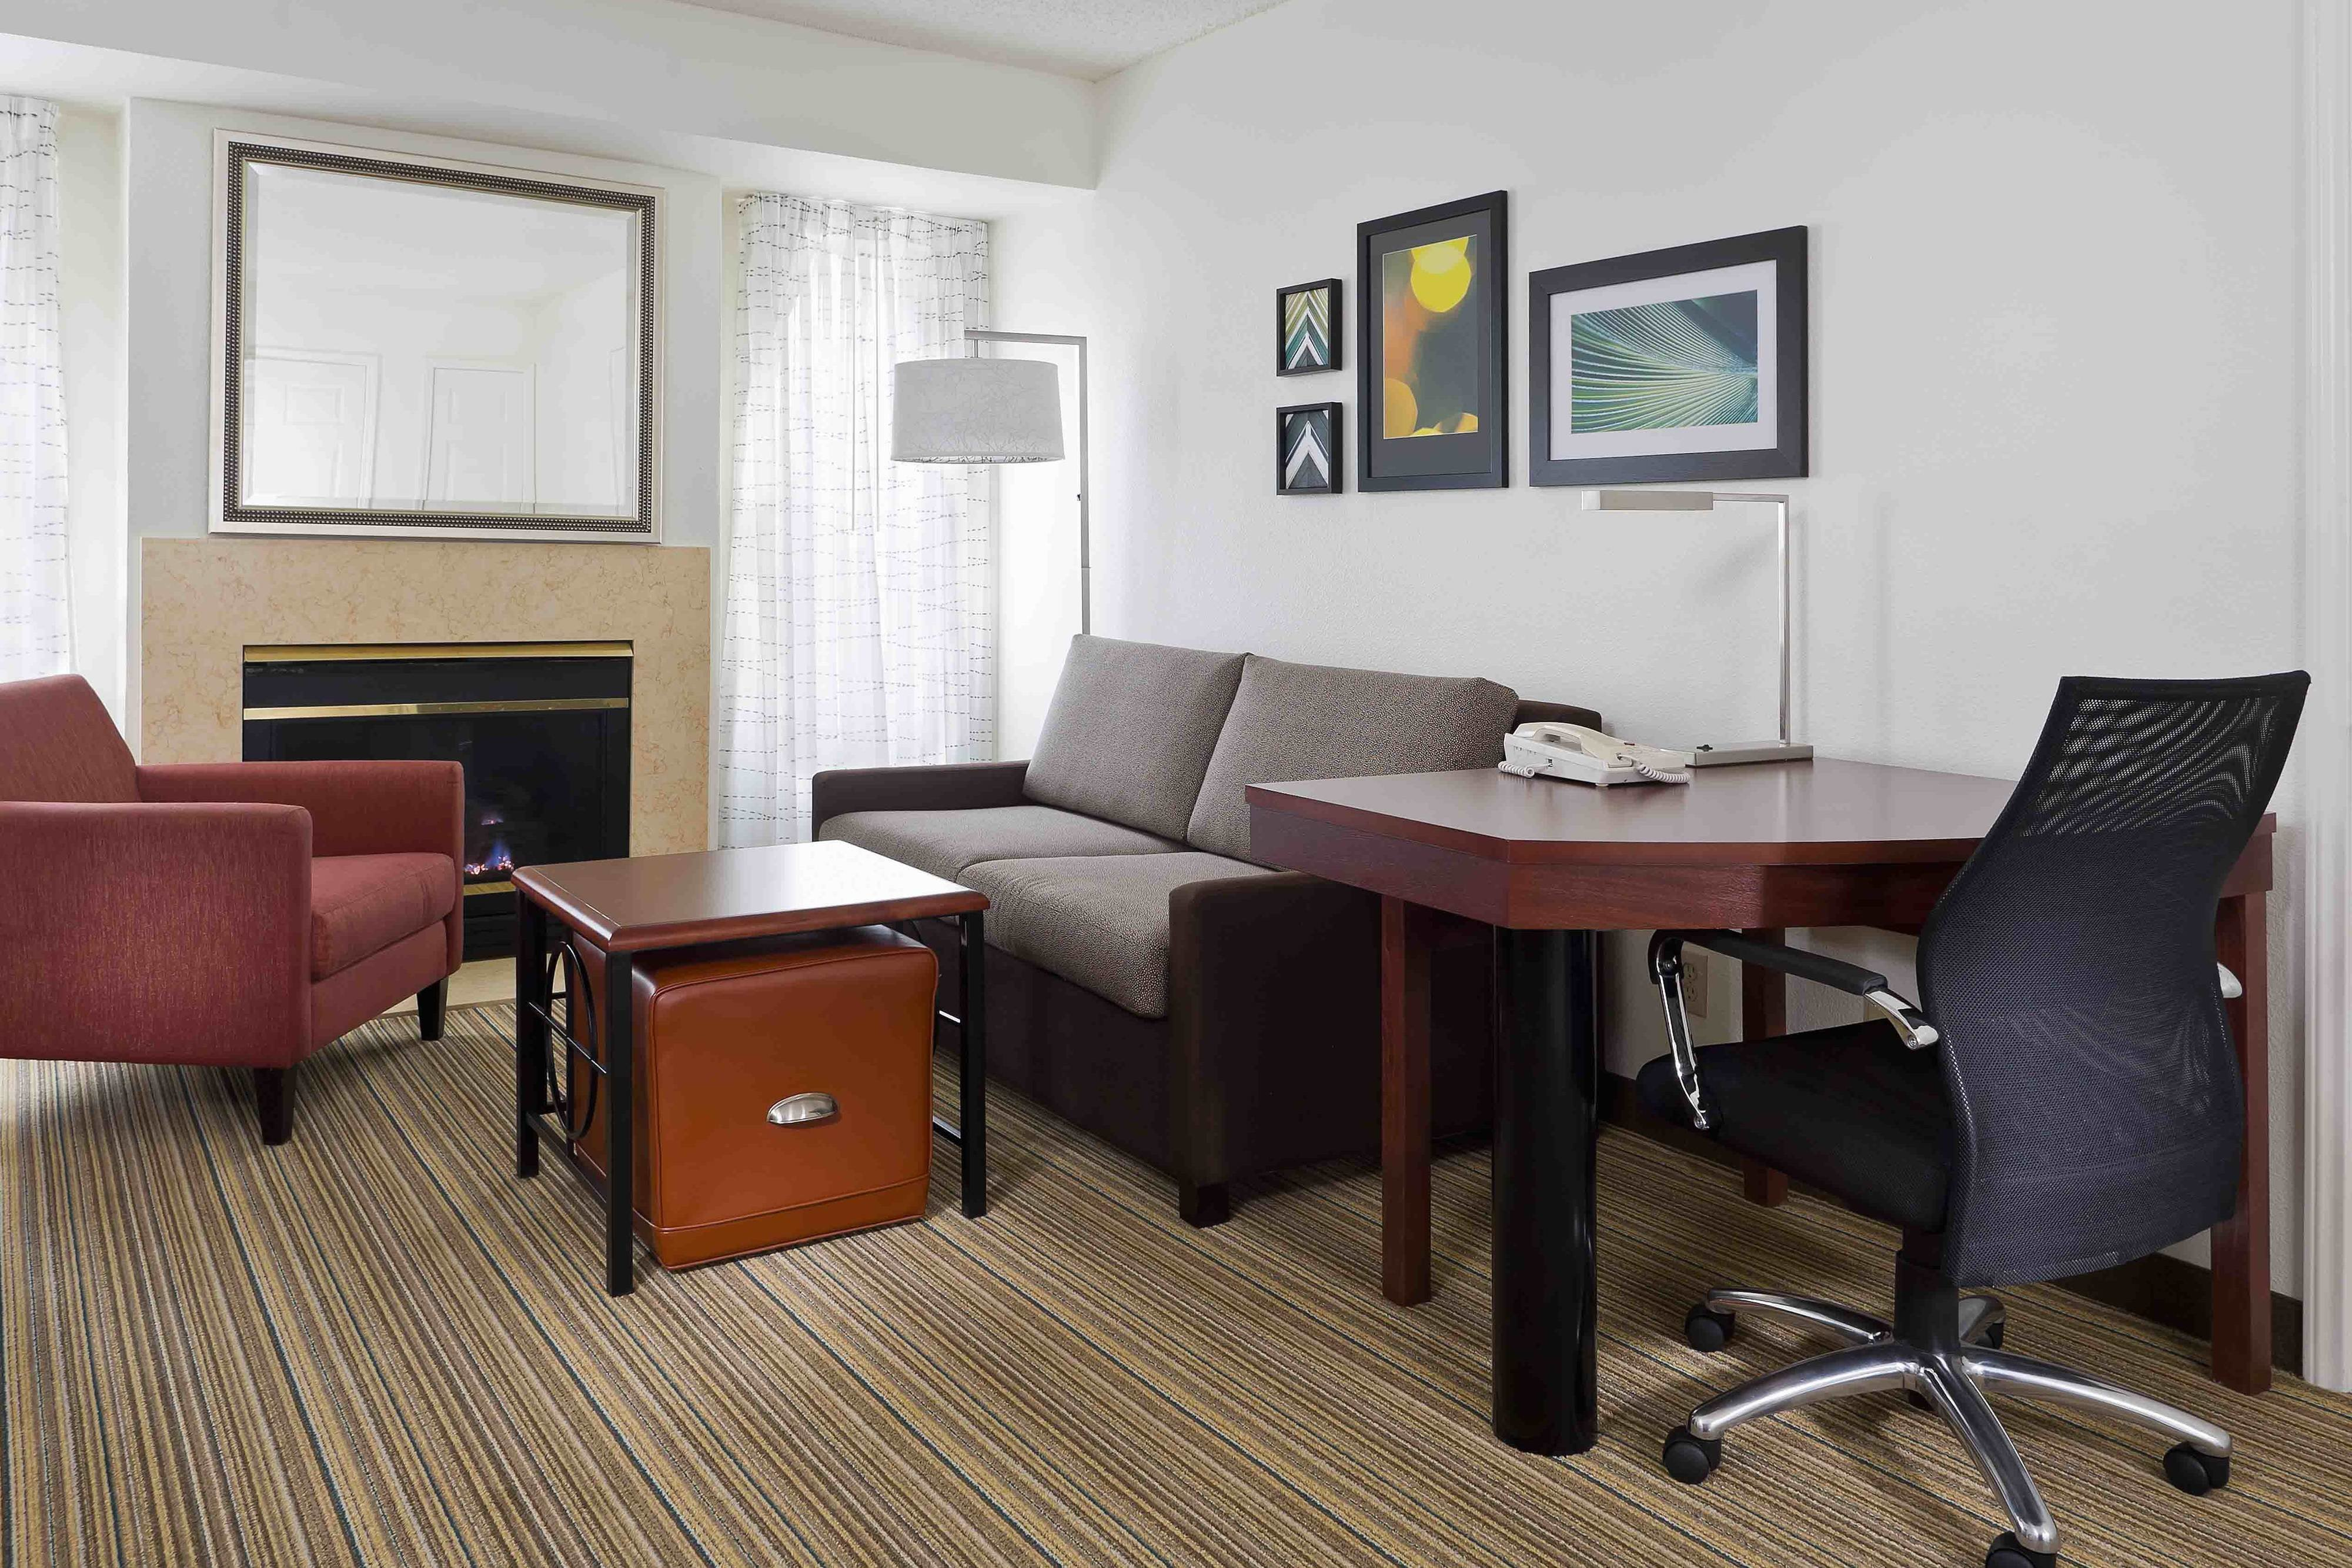 Best Hotels Westminster Co North Denver Residence Inn With Pictures